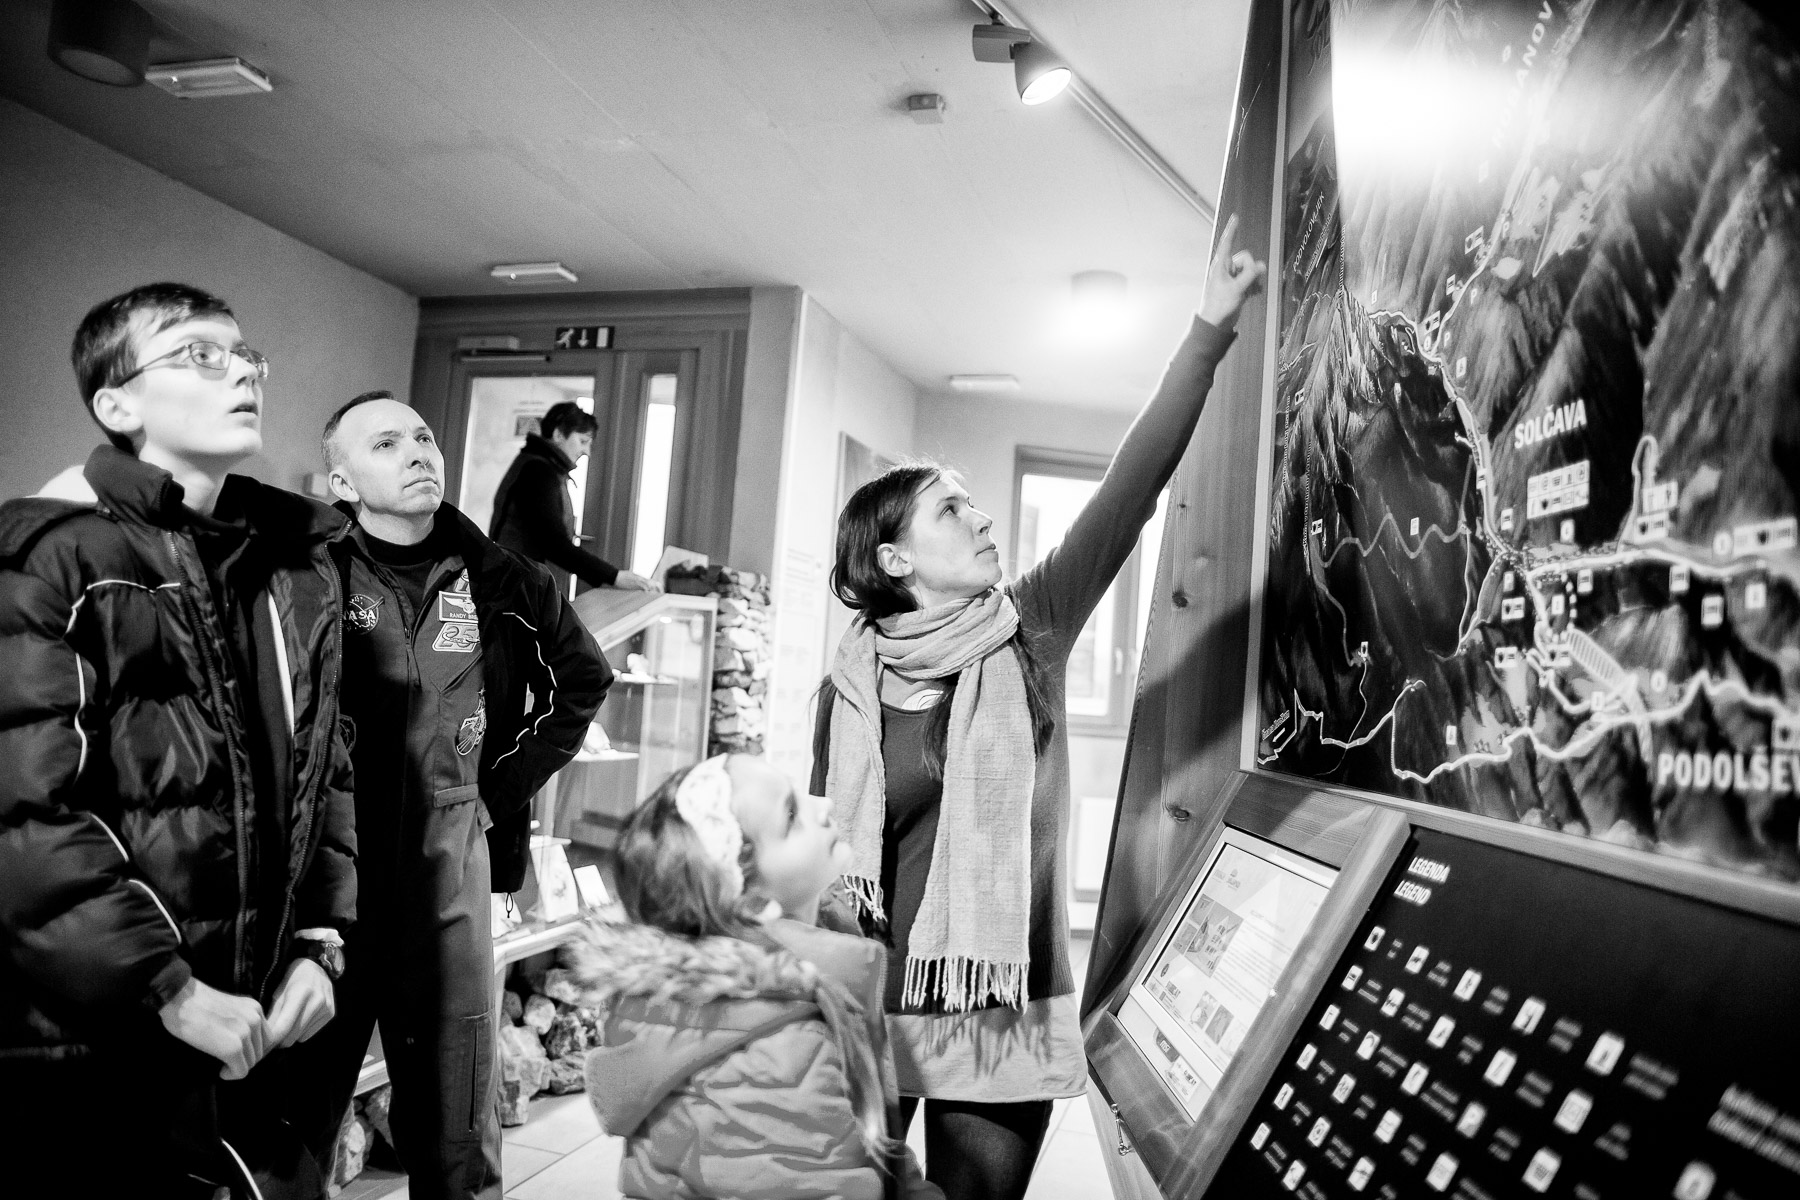 Randy and his son are shown a map of the area around Ljubno, Luce and Solcava in the Solcava tourist information center.